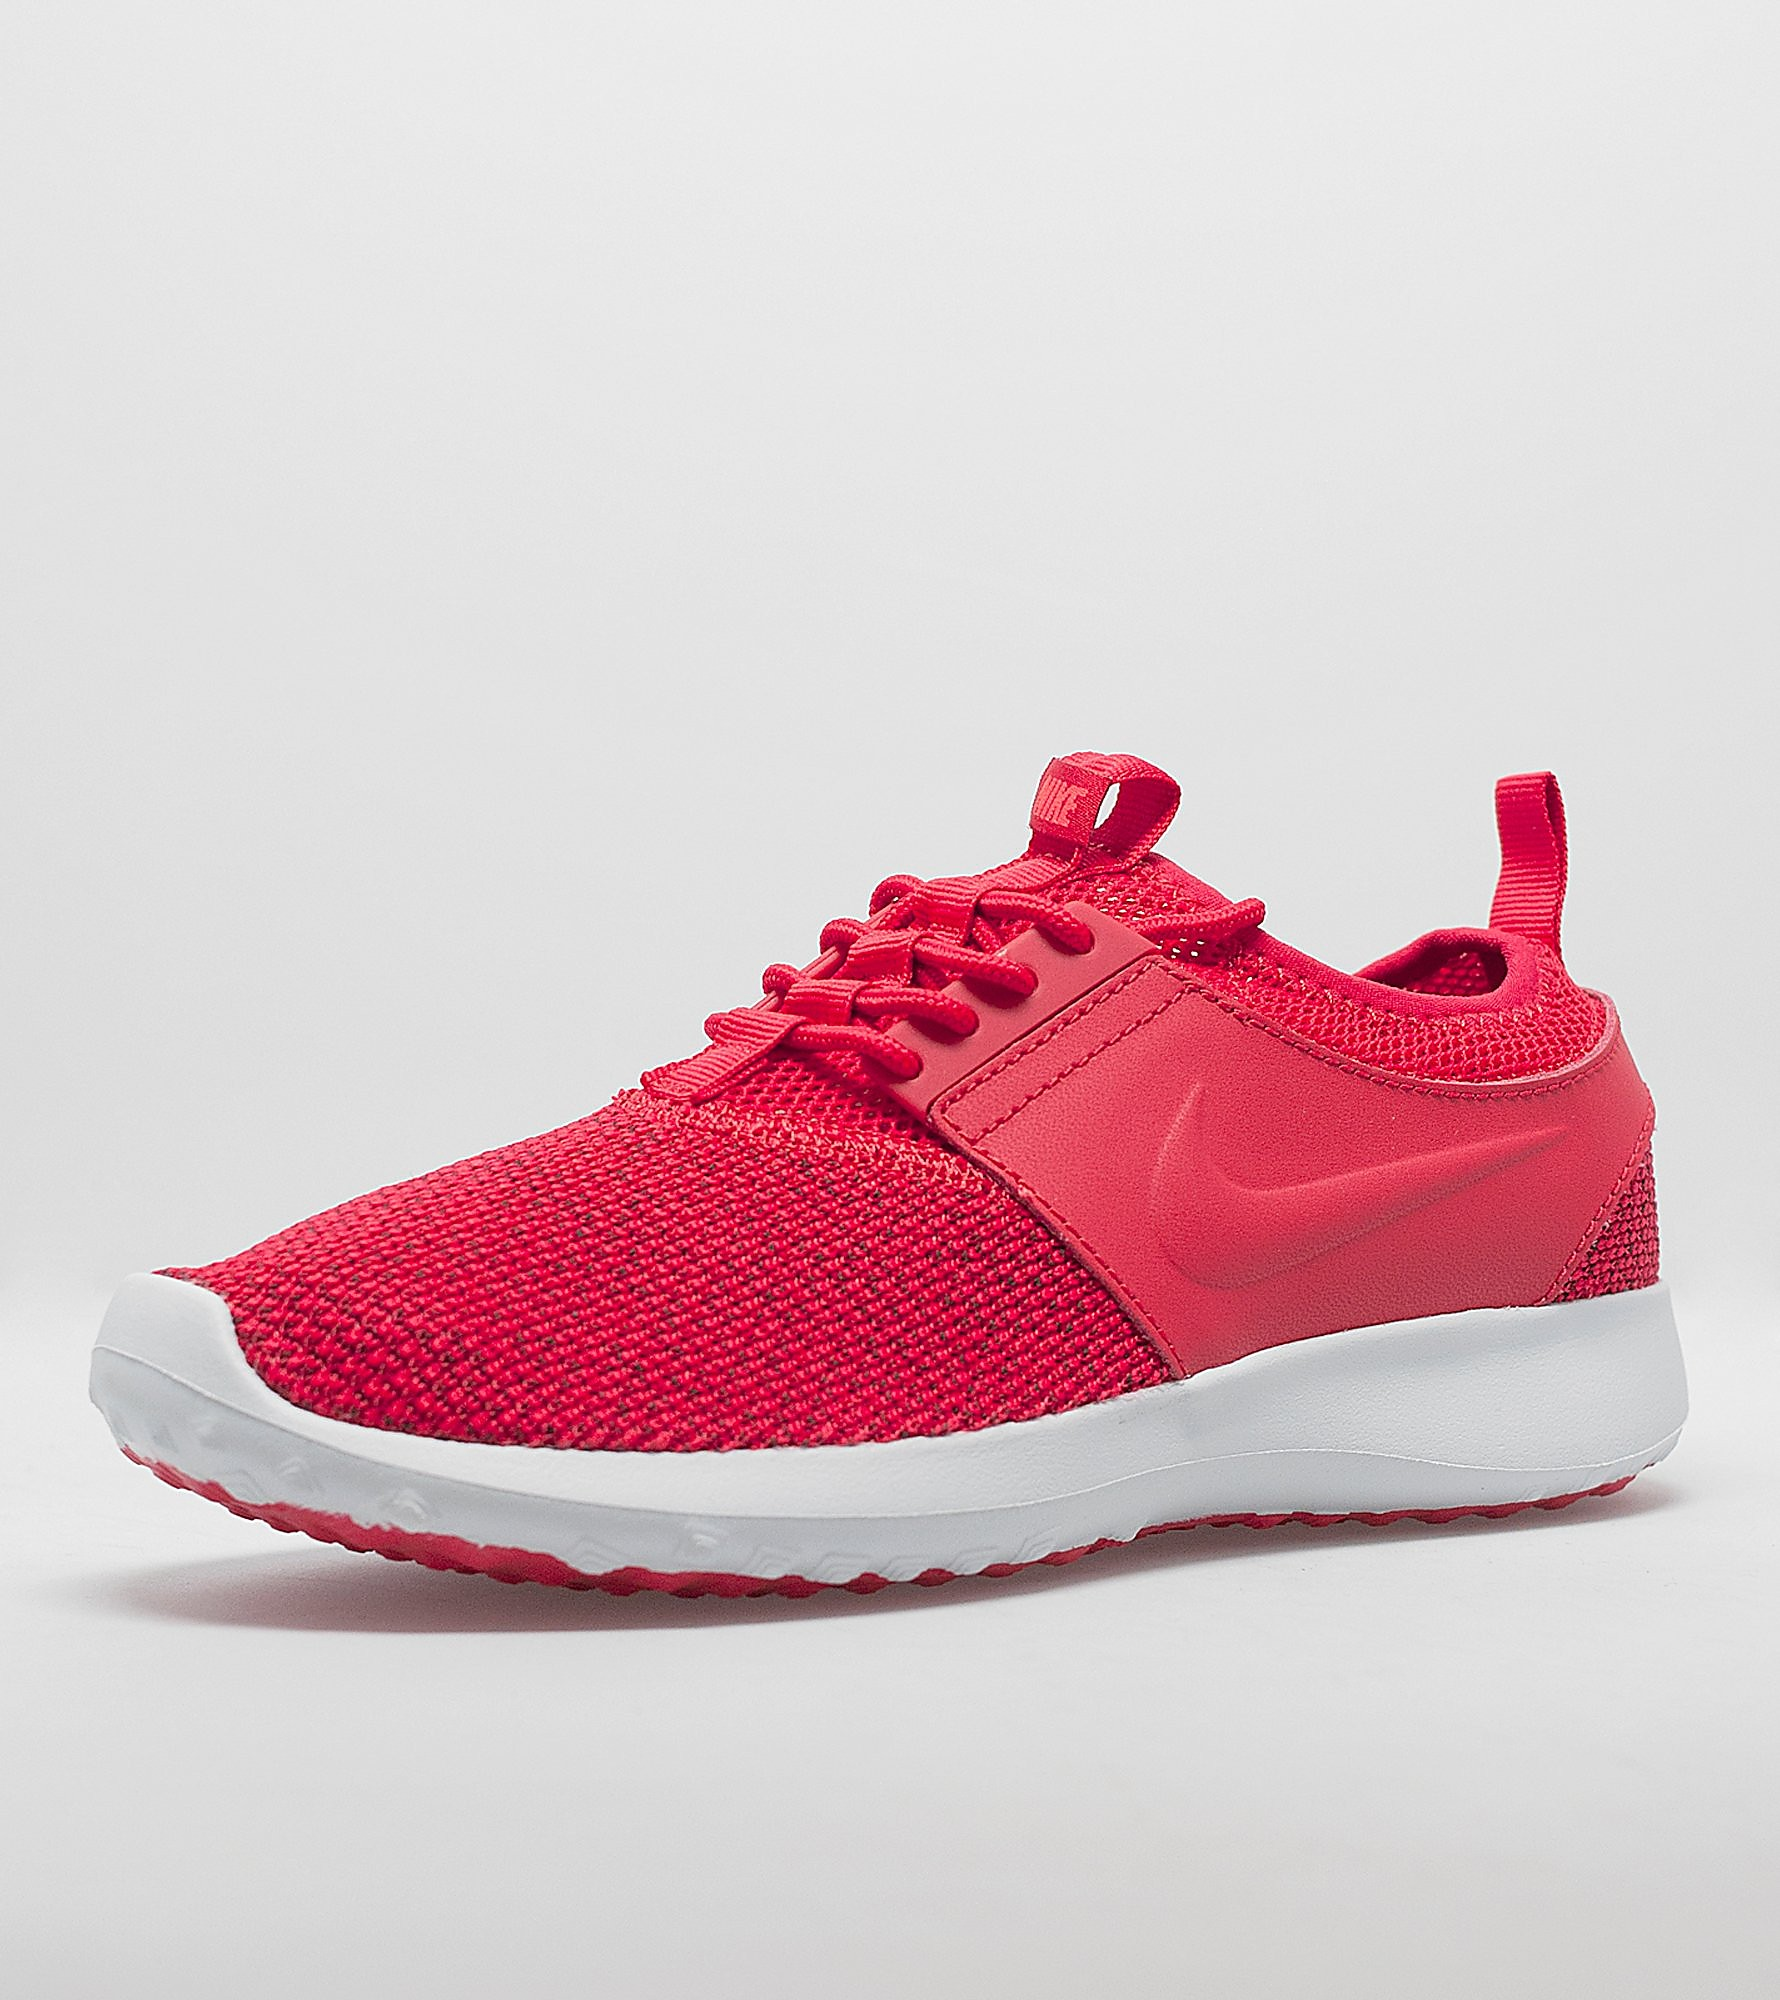 Nike Juvenate TXT Women's